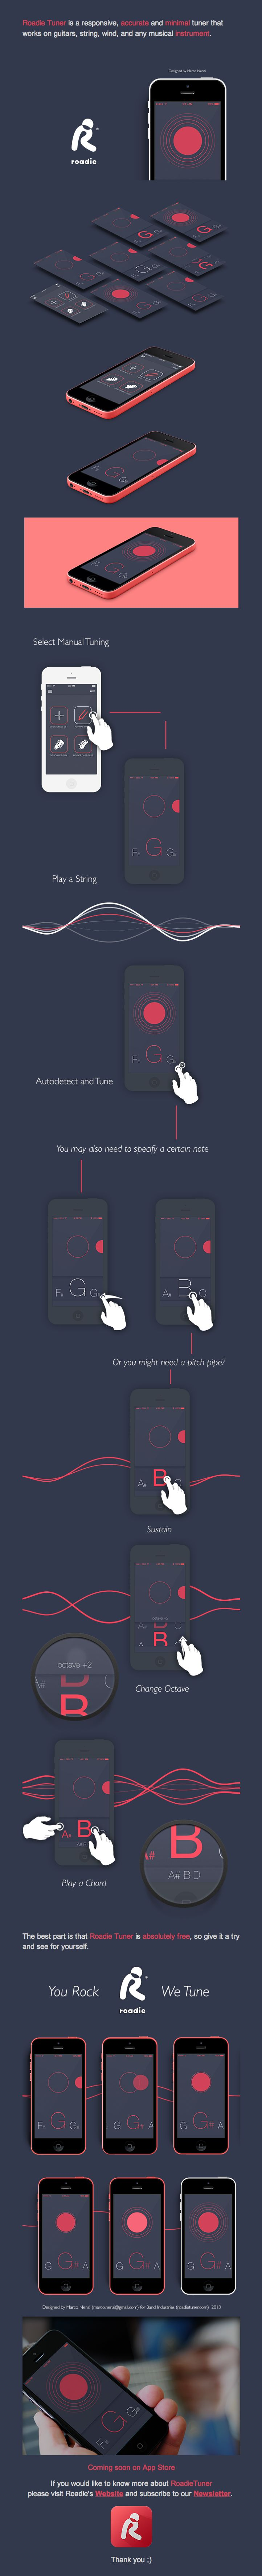 by Marco Nenzi, via Behance *** #app #gui #ui #behance